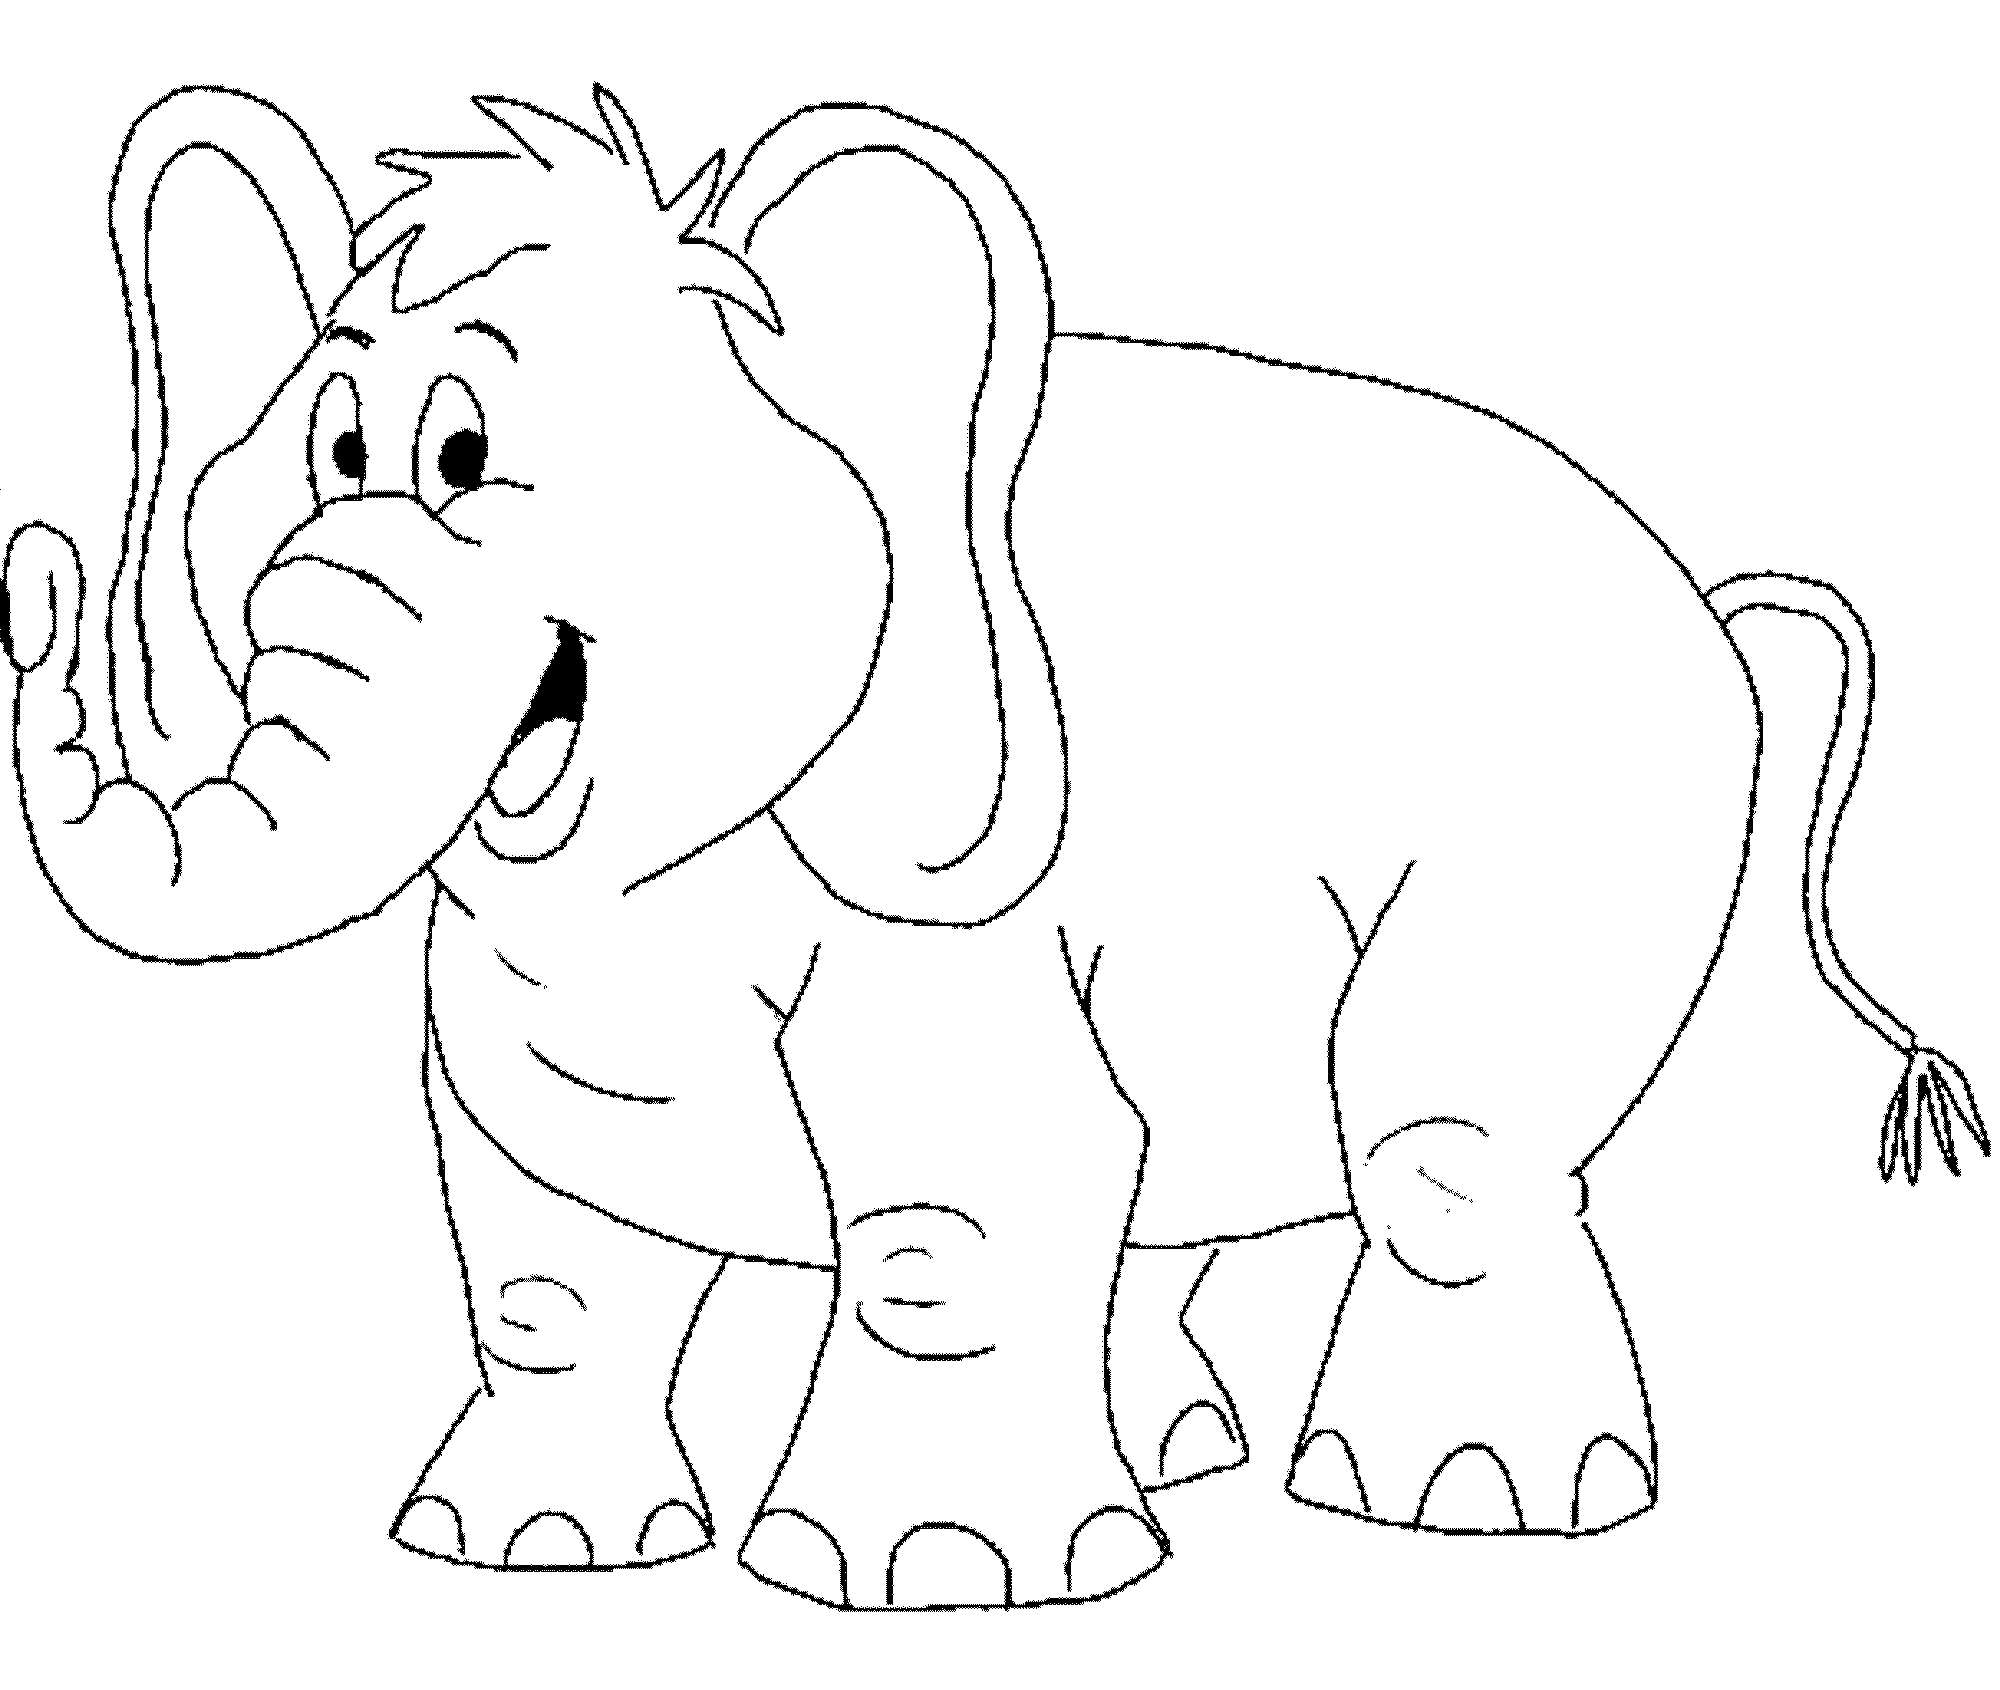 Coloring Pages For Toddlers Pdf At Getdrawings Com Free For